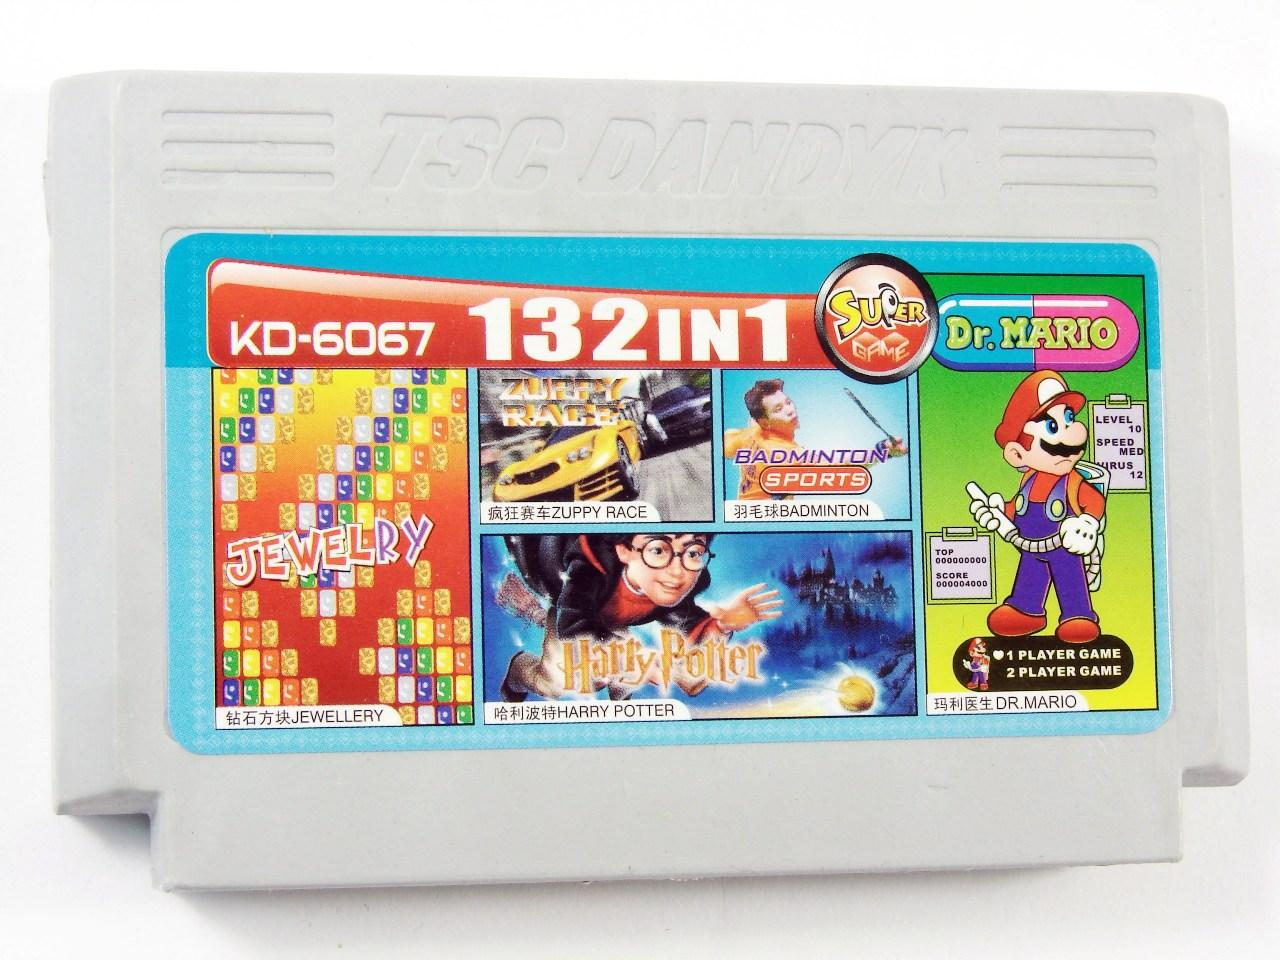 KD 6067 132 in 1 (Dendy), Jewellery, Zuppy Race, Harry Potter, Badminton, Dr. Mario